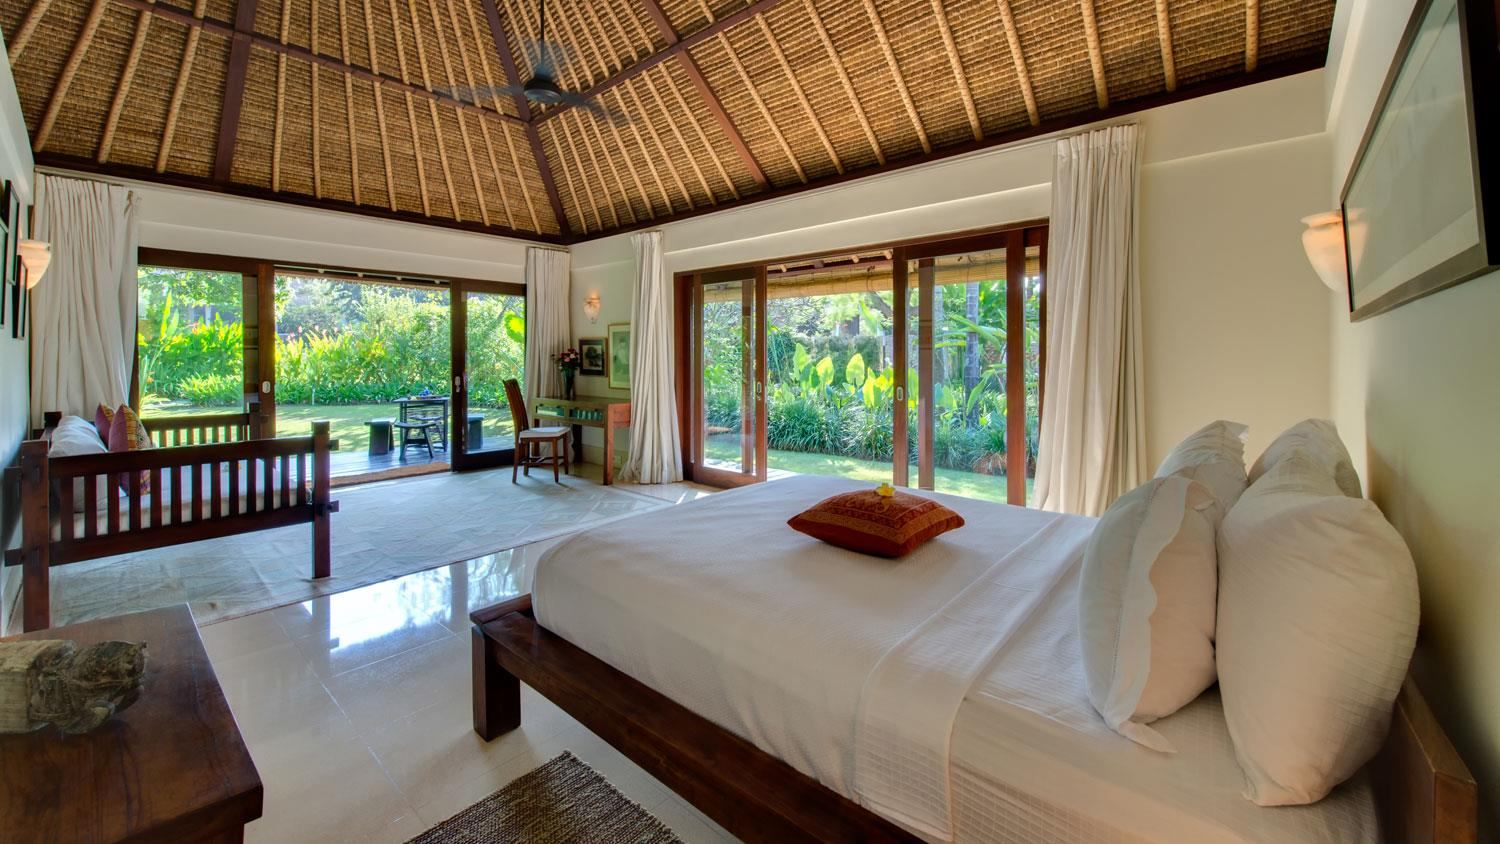 Bedroom with View - Villa Samadhana - Sanur, Bali